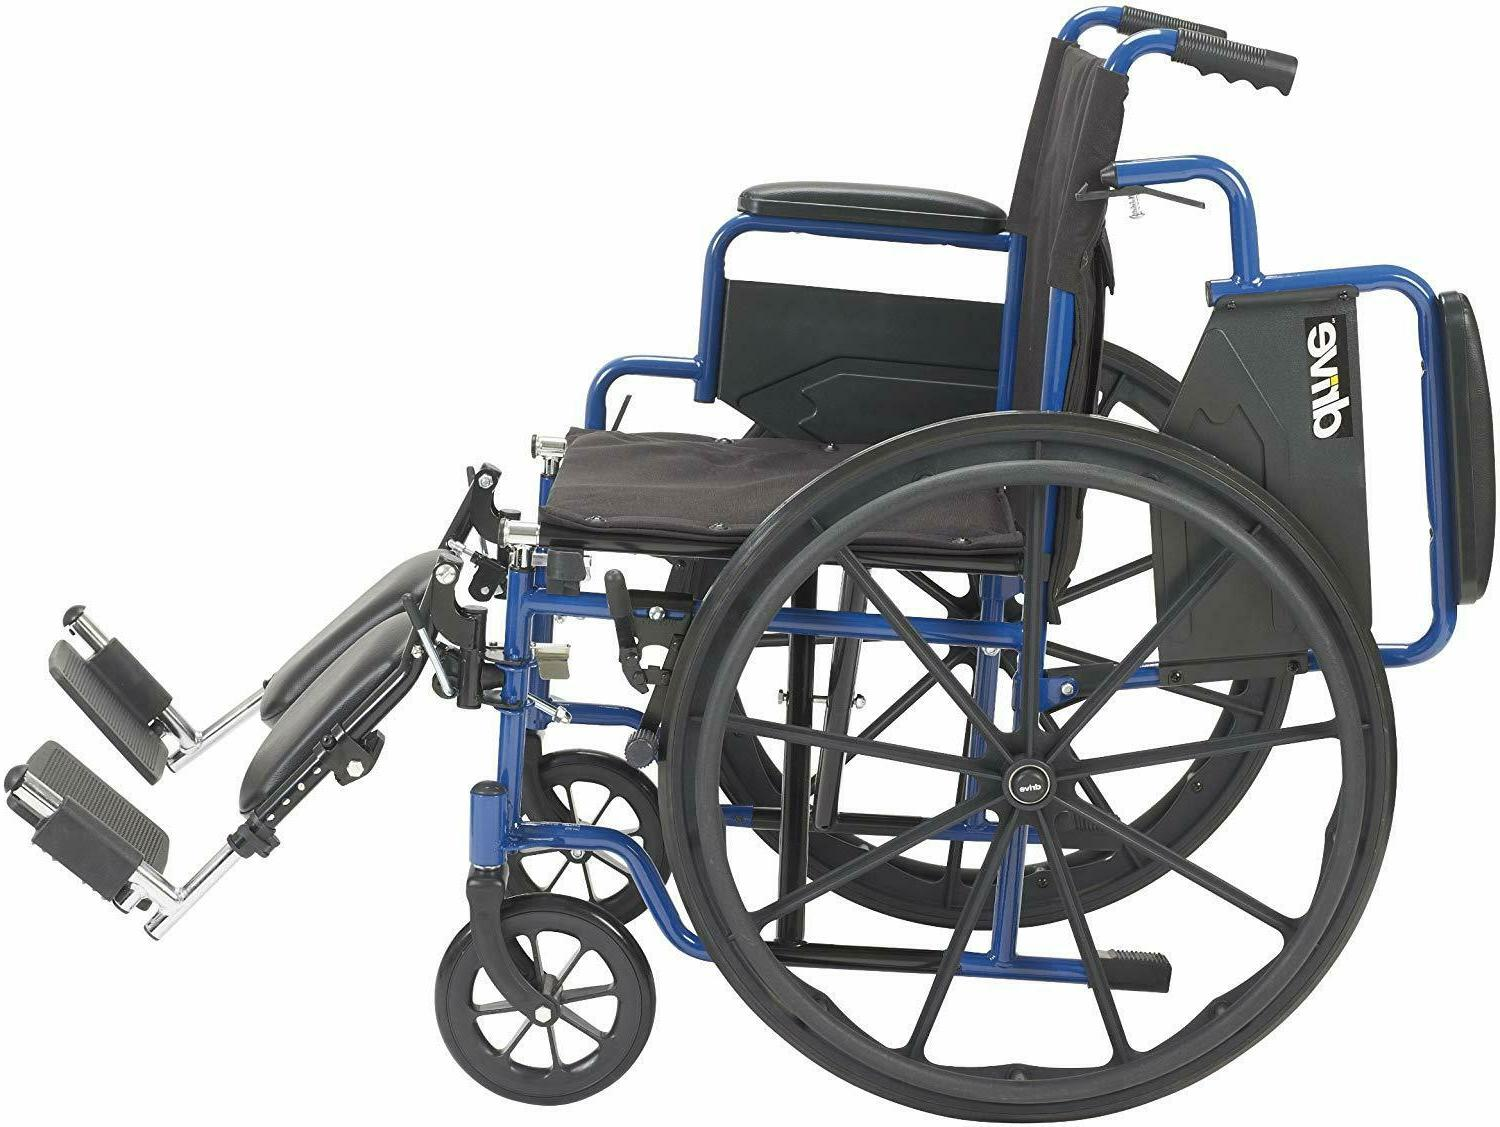 Drive Wheelchair with Back Desk Arms,